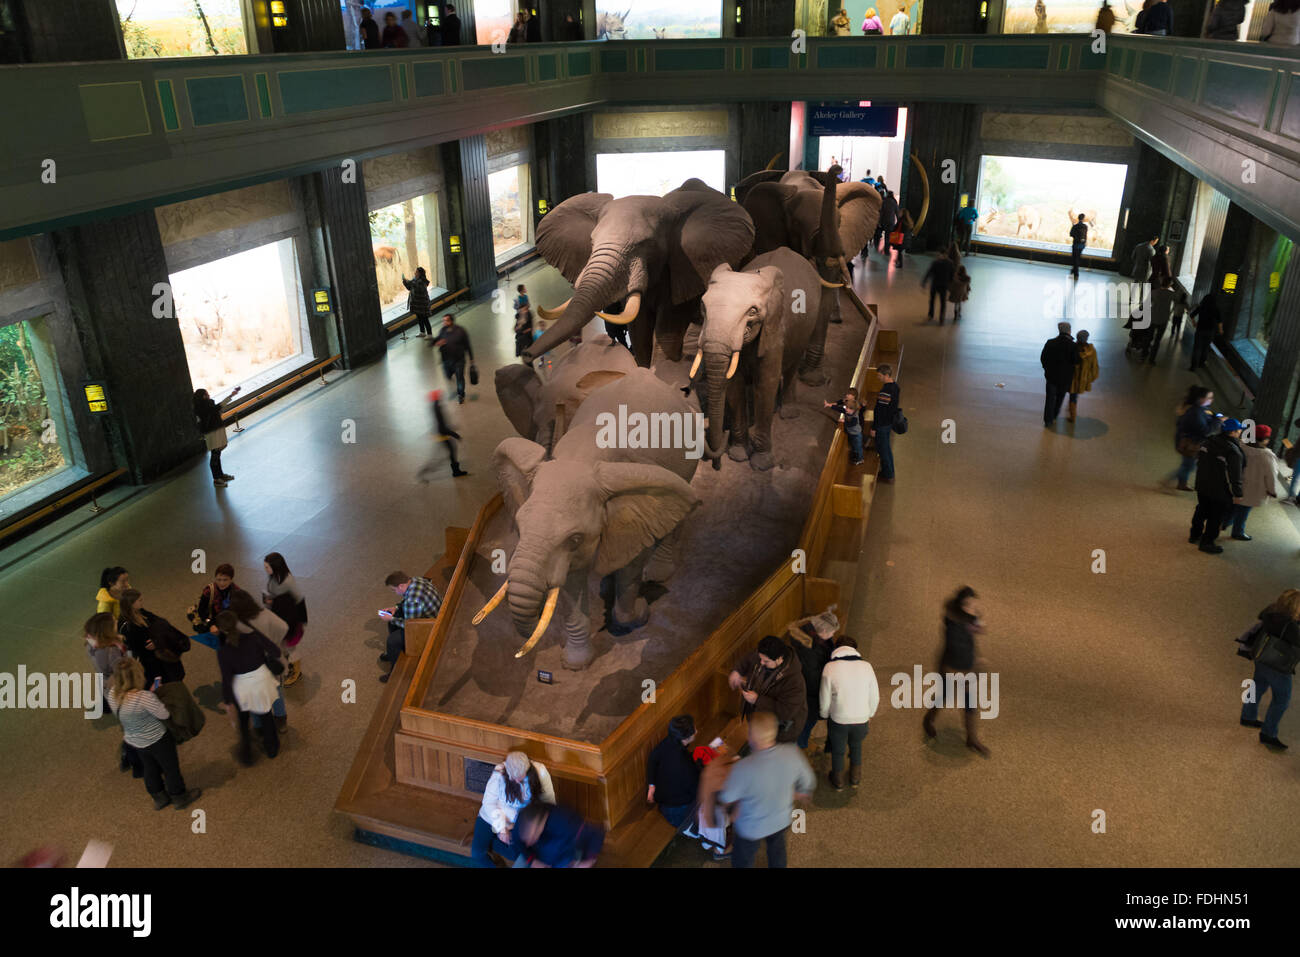 A herd of elephants on display in the large mammals hall at the Museum of Natural History in New York - Stock Image